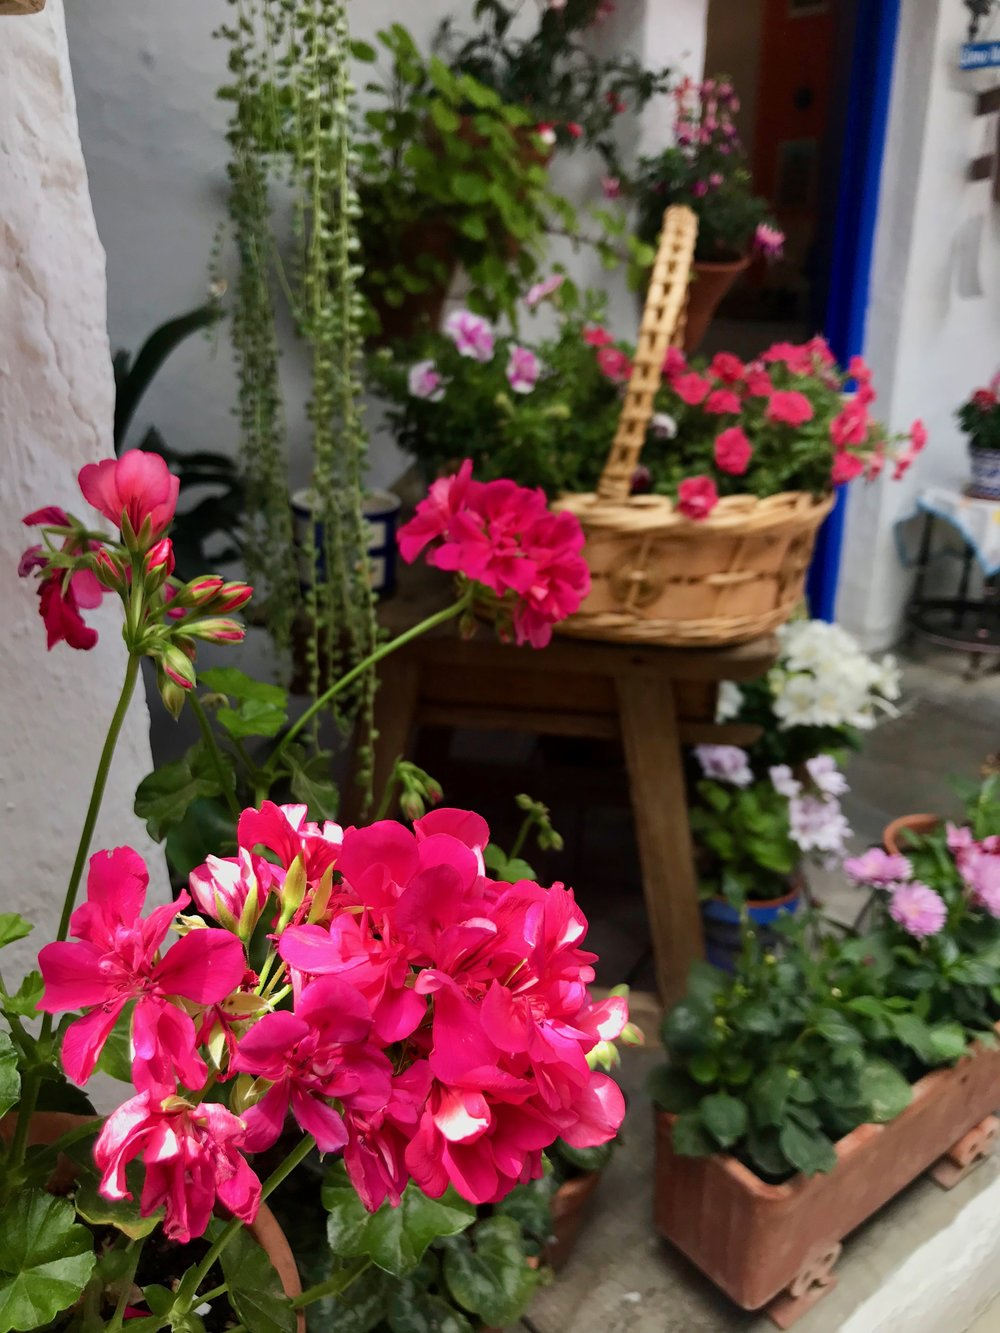 Glamour shot of geraniums, which seem to be the official flower of Córdoba.